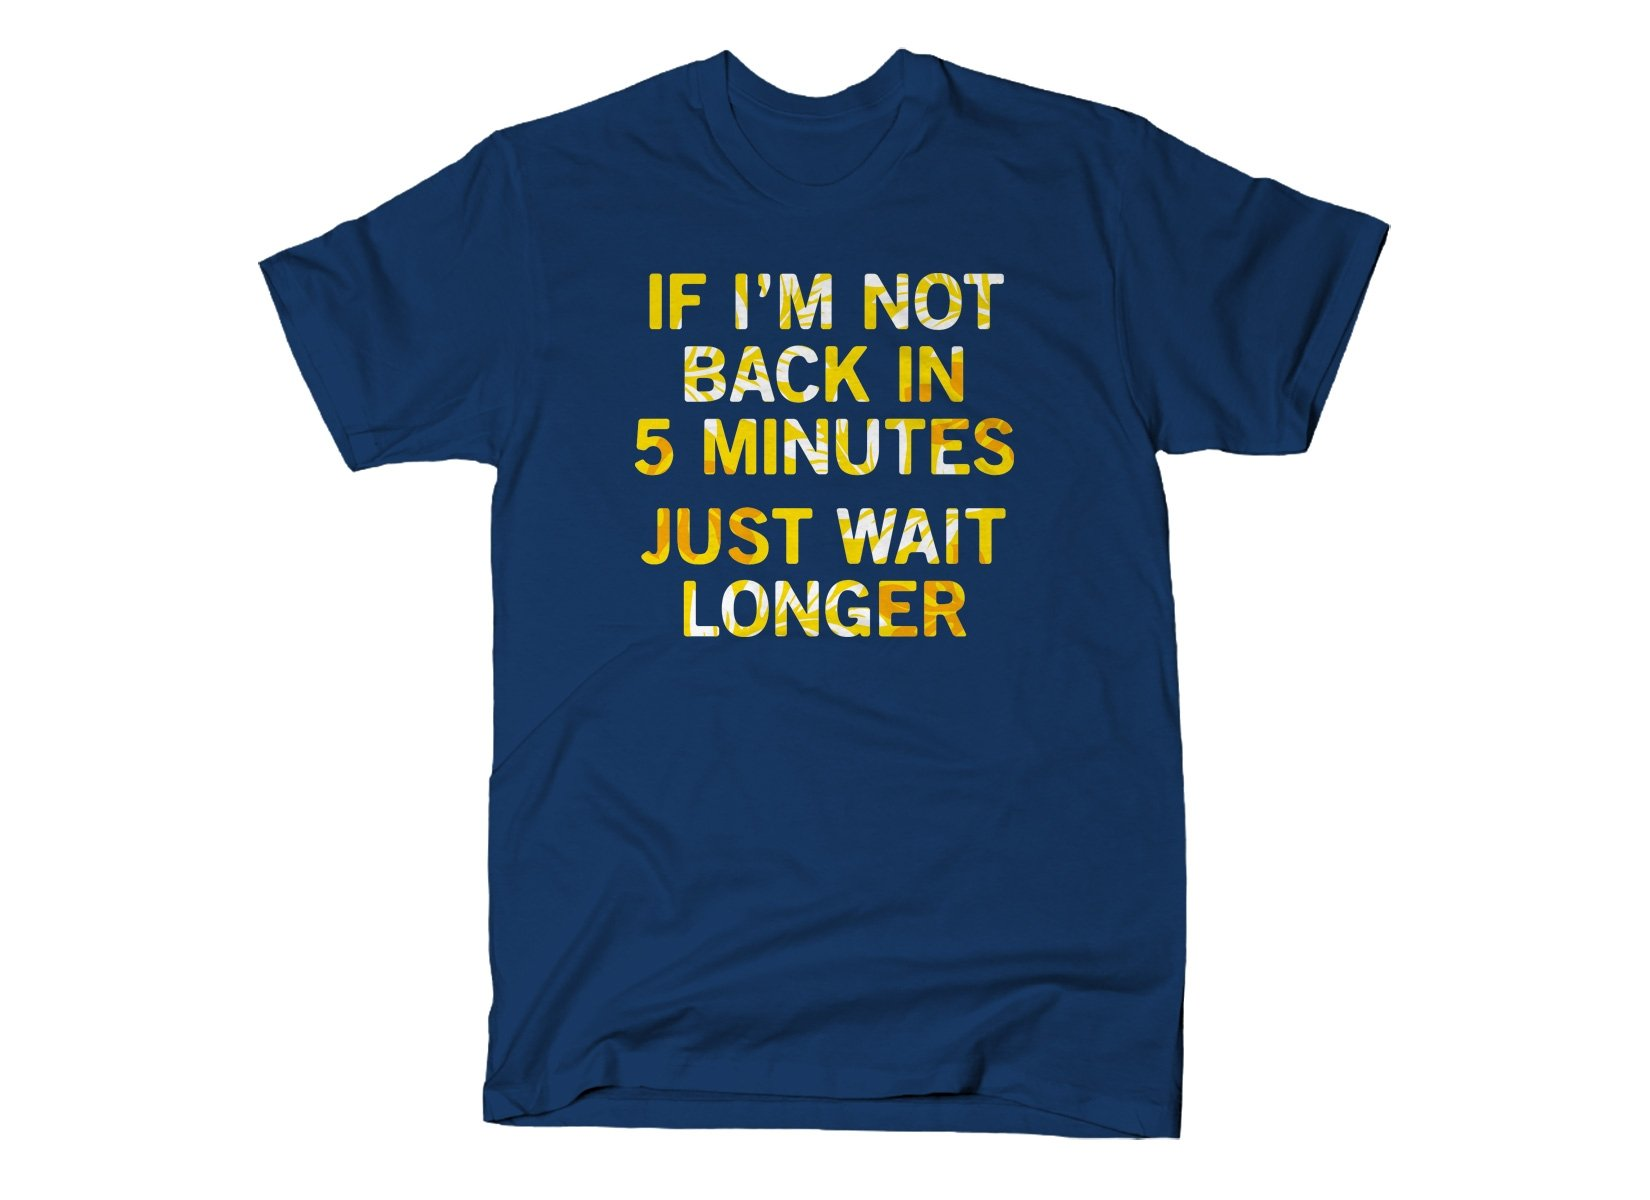 If I'm Not Back In 5 Minutes, Just Wait Longer on Mens T-Shirt